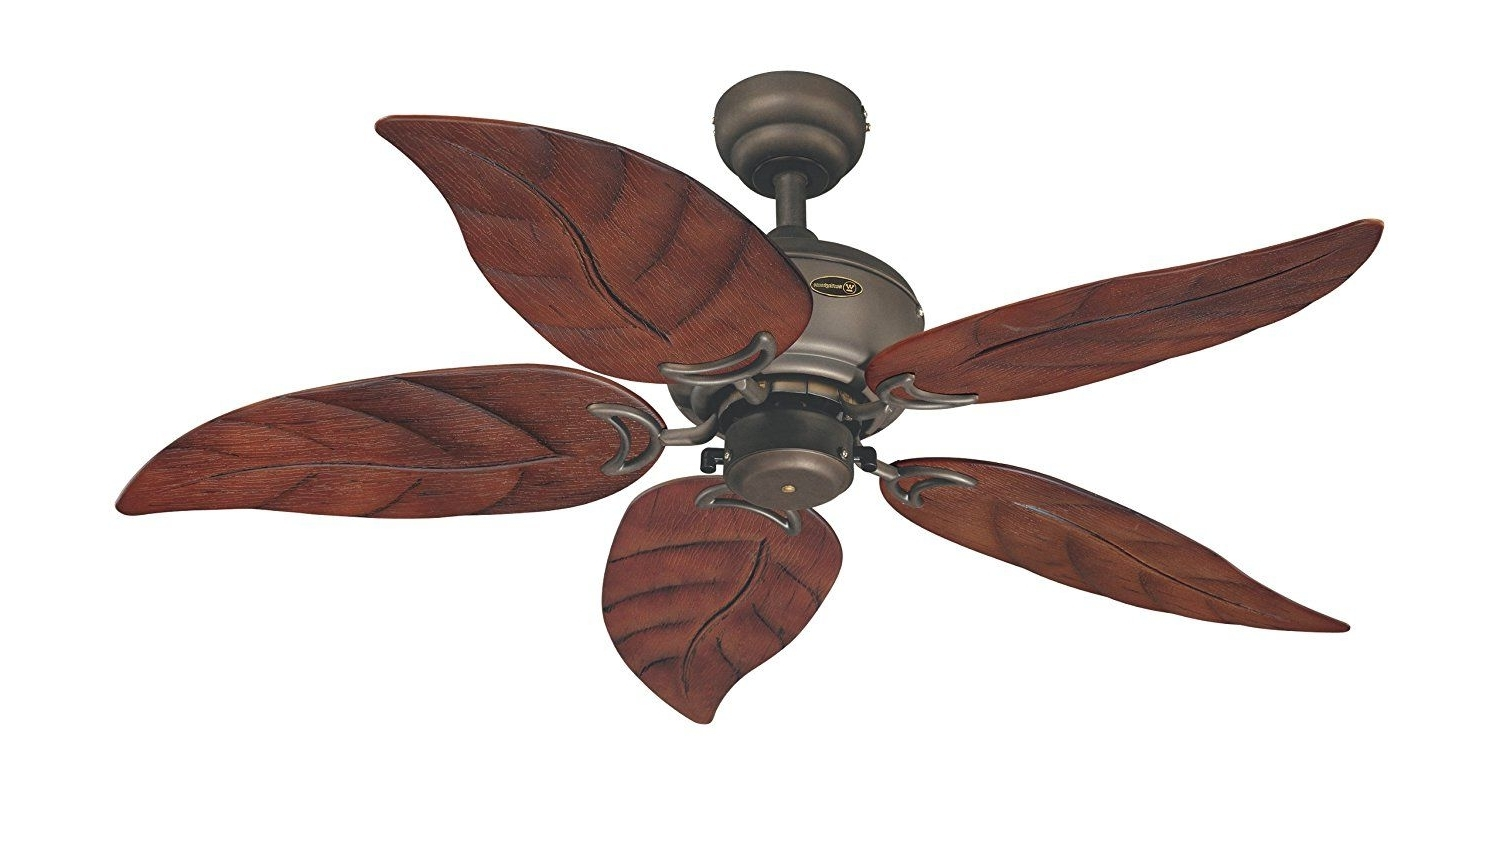 48 Inch Outdoor Ceiling Fans With Light With Preferred Westinghouse 7861920 Oasis Single Light 48 Inch Five Blade Indoor (View 5 of 20)